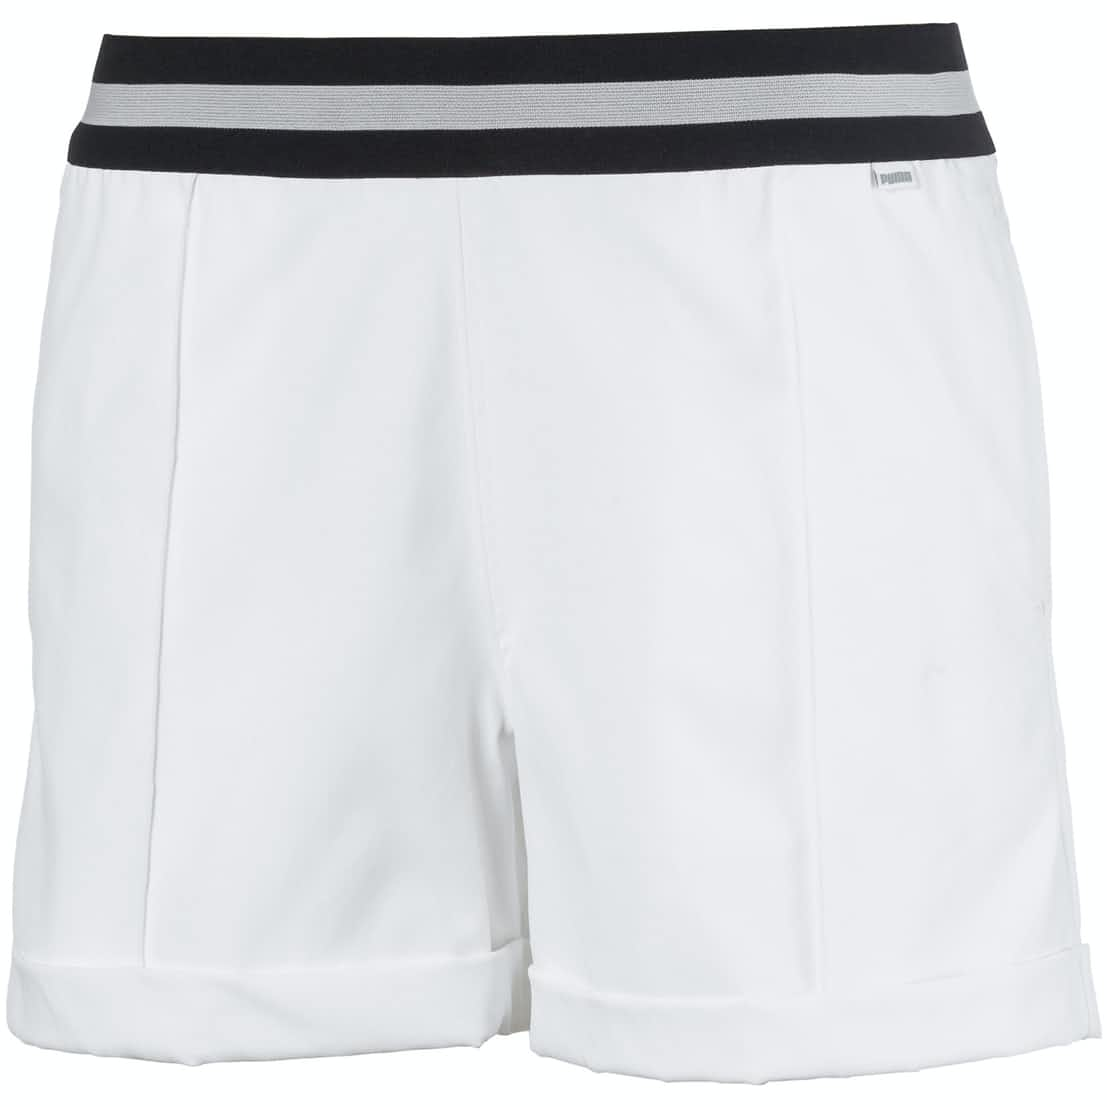 Womens Elastic Shorts Bright White - SS20